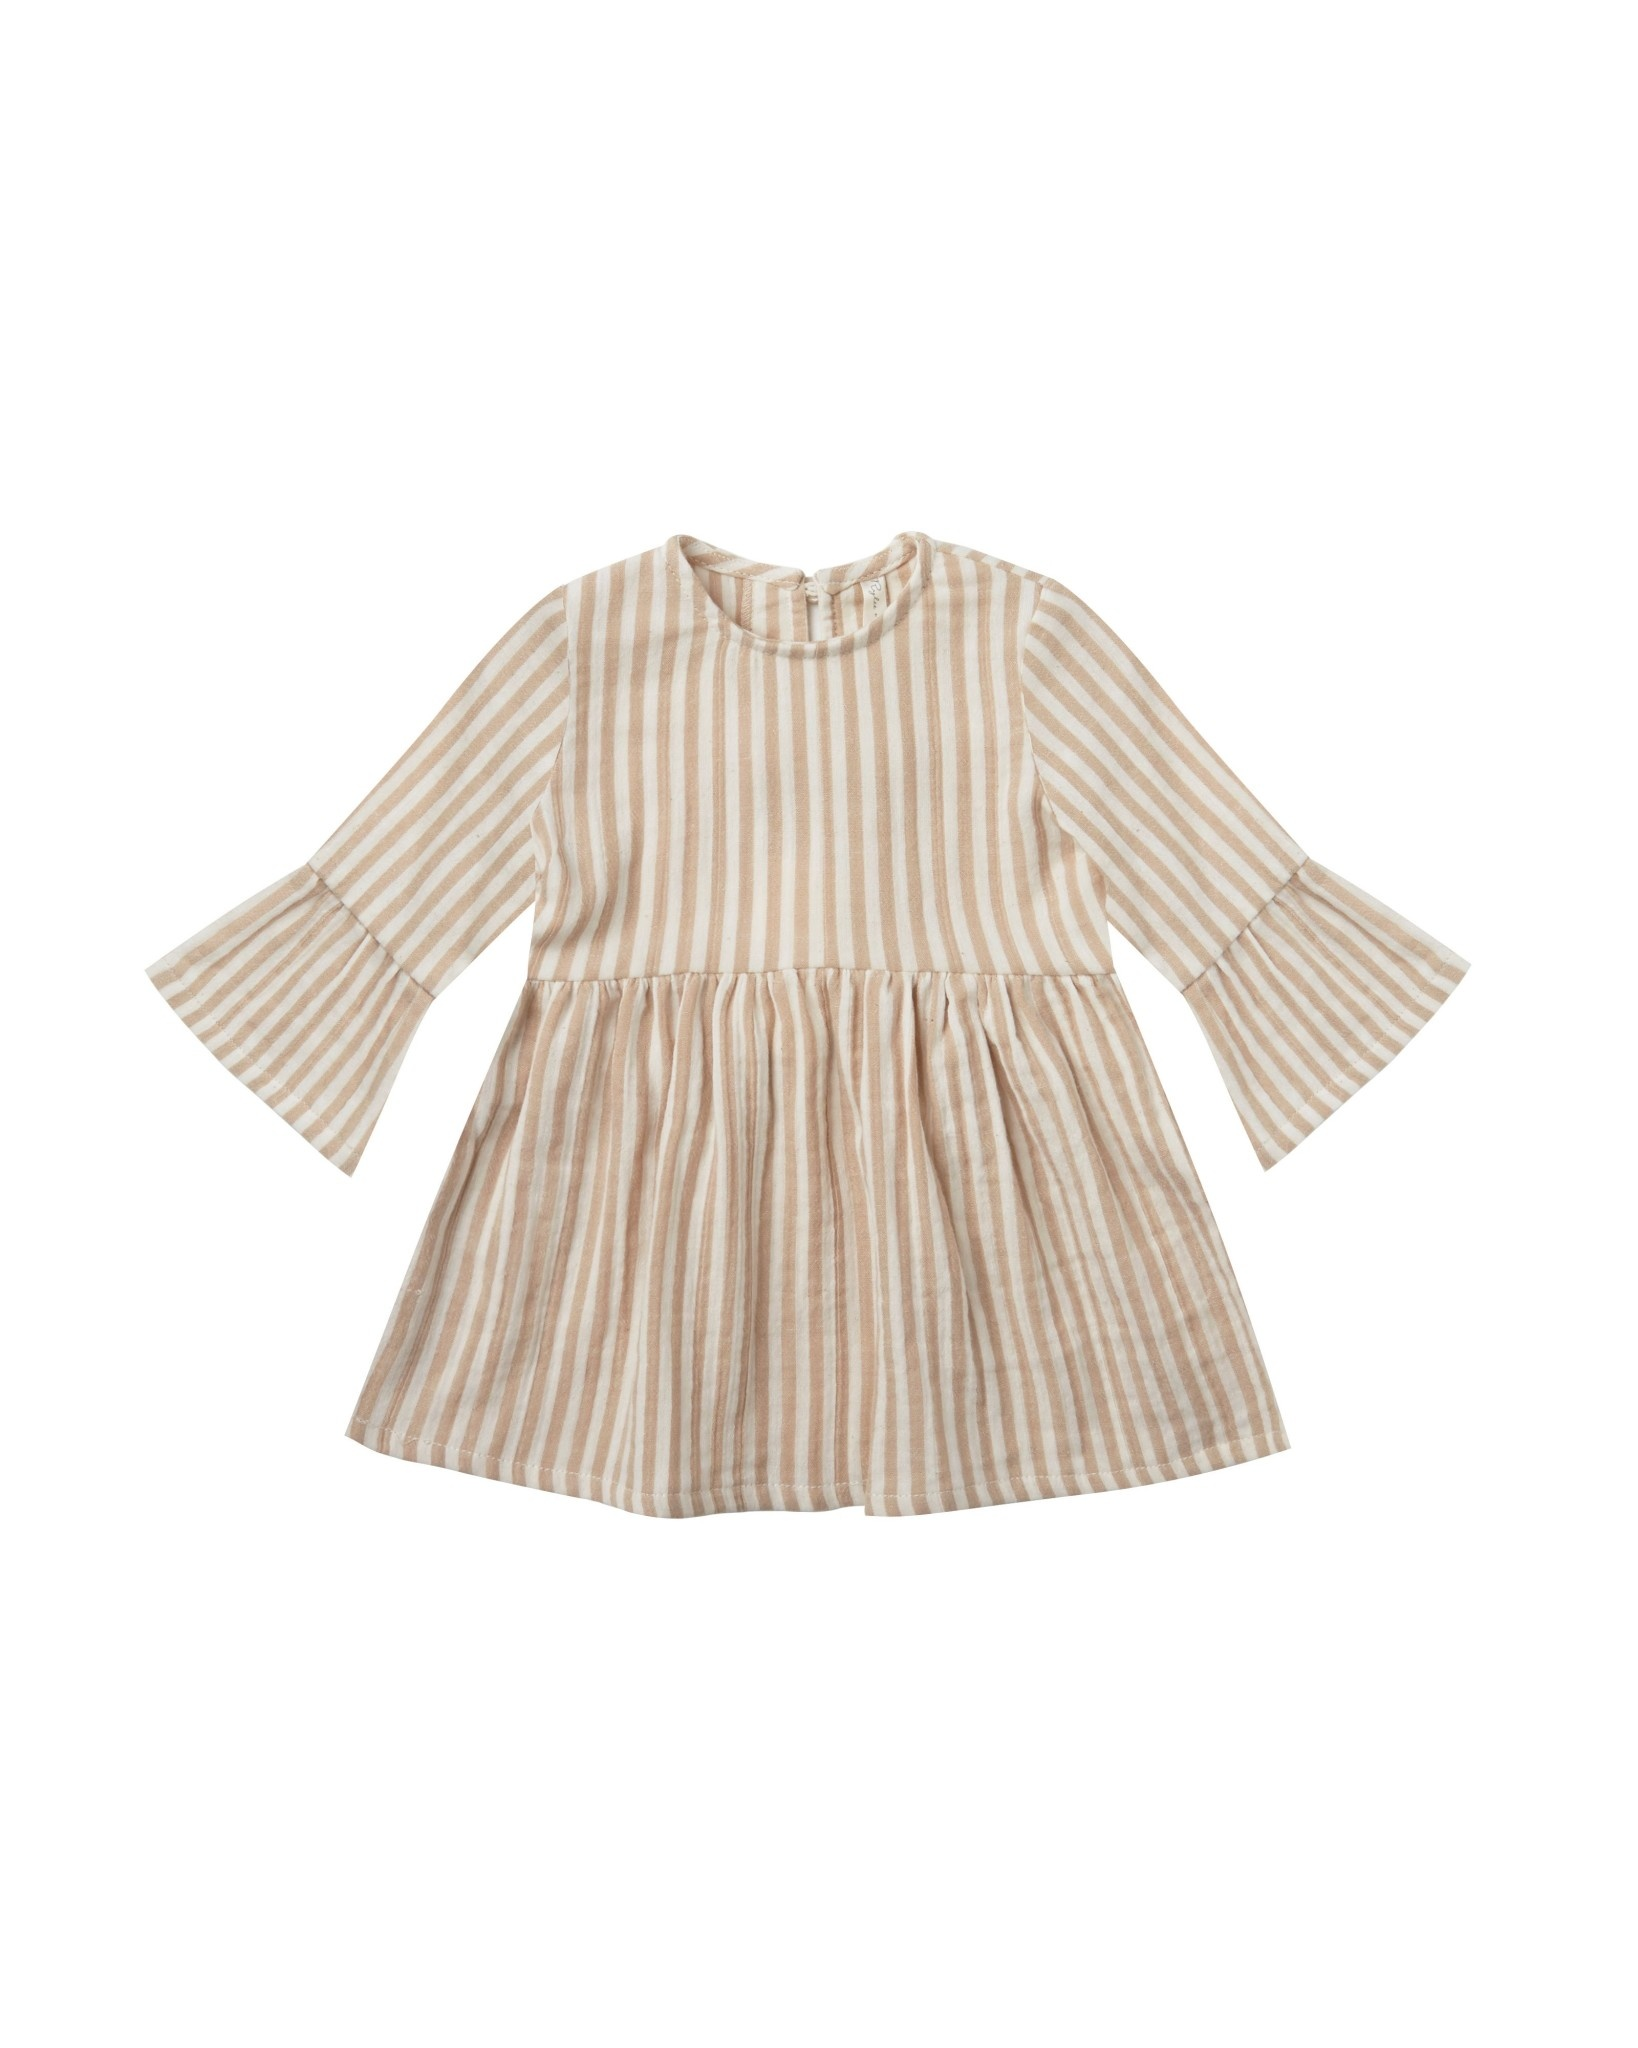 RYLEE AND CRU Striped Bell Dress